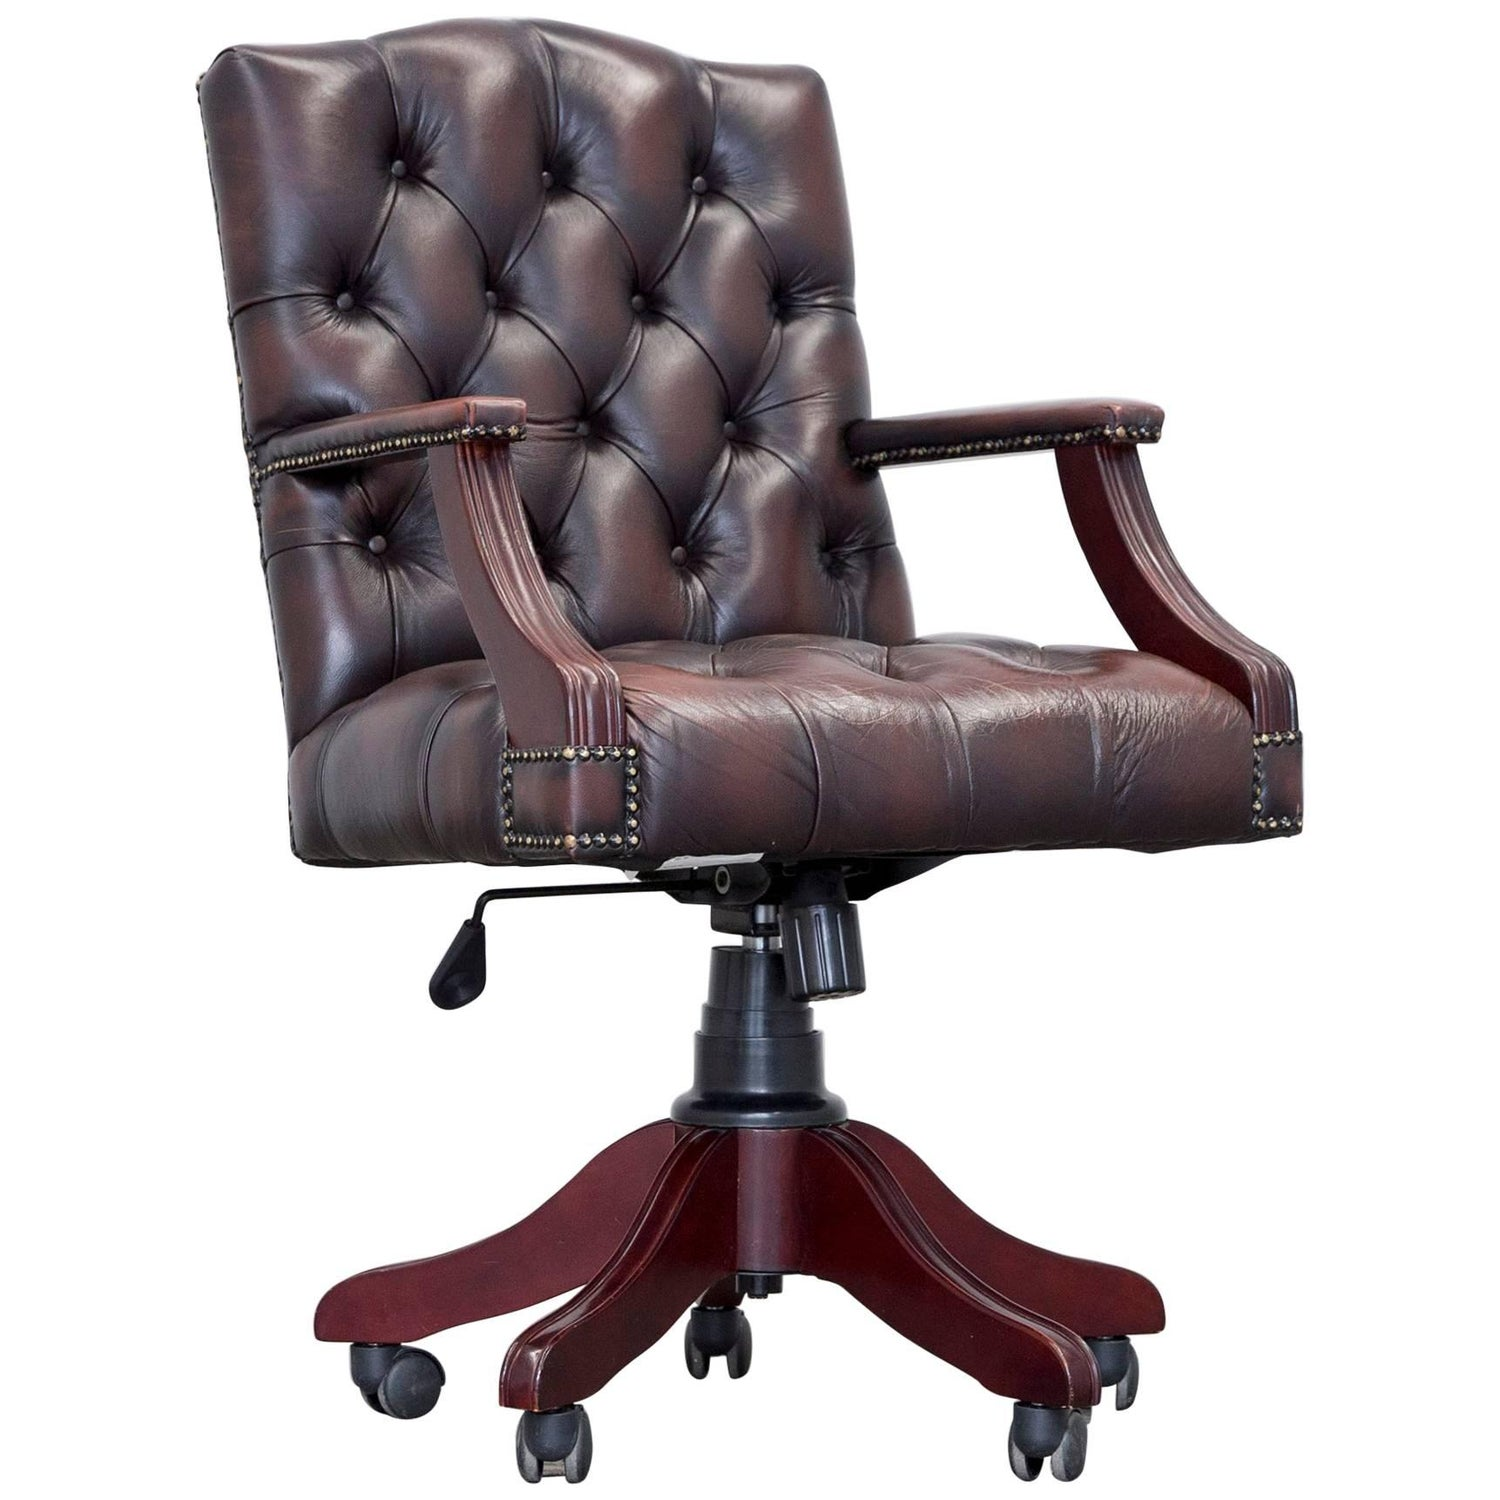 Chesterfield Swivel Chair Leather Brown Red at 1stdibs